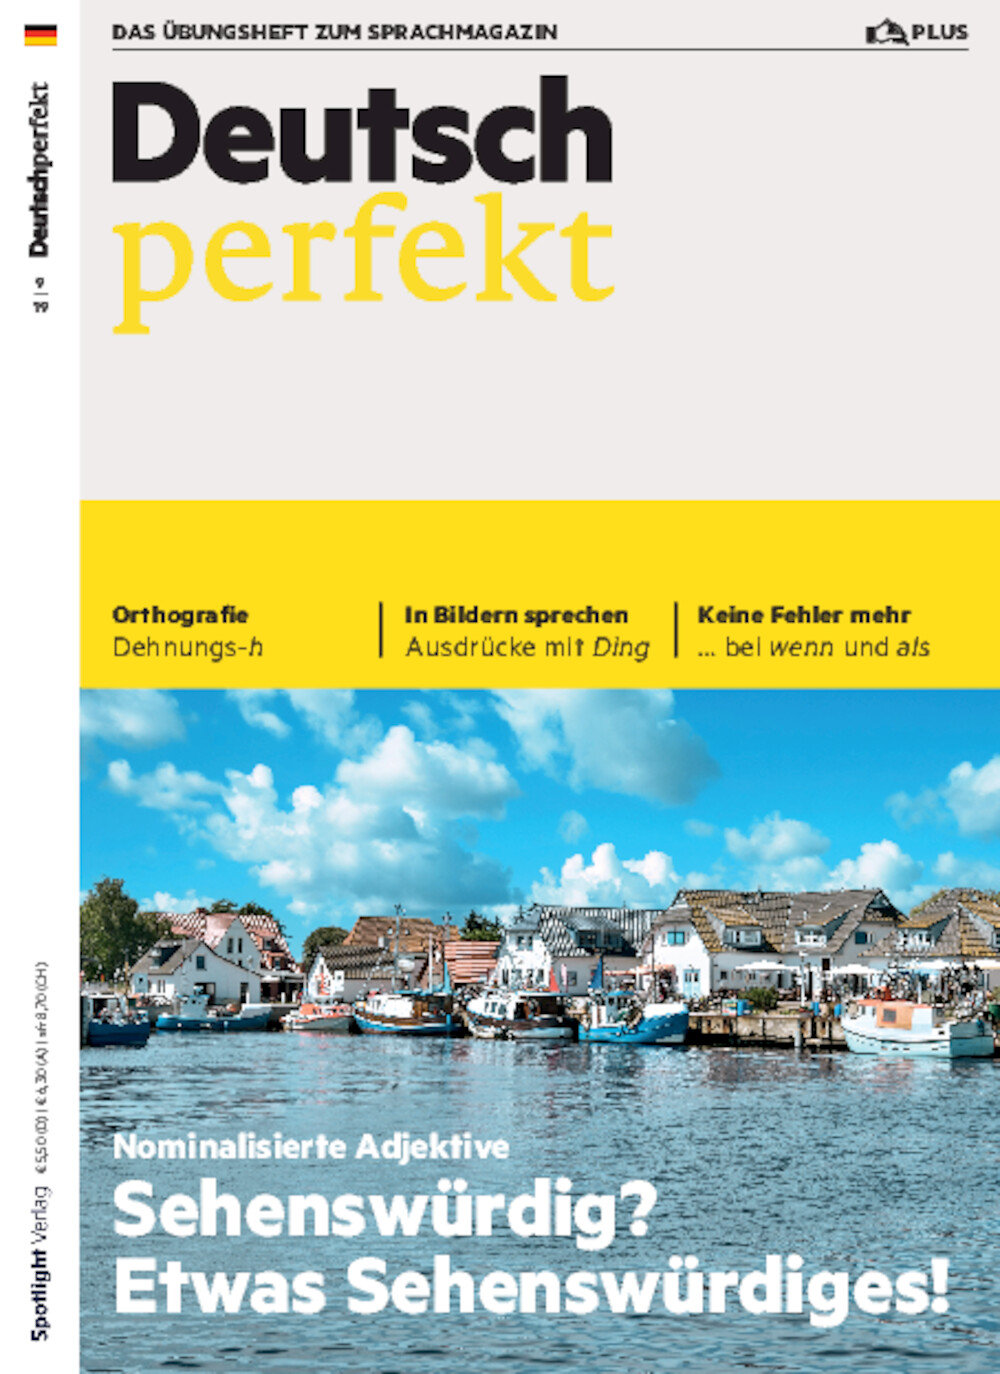 Deutsch perfekt PLUS ePaper 09/2019